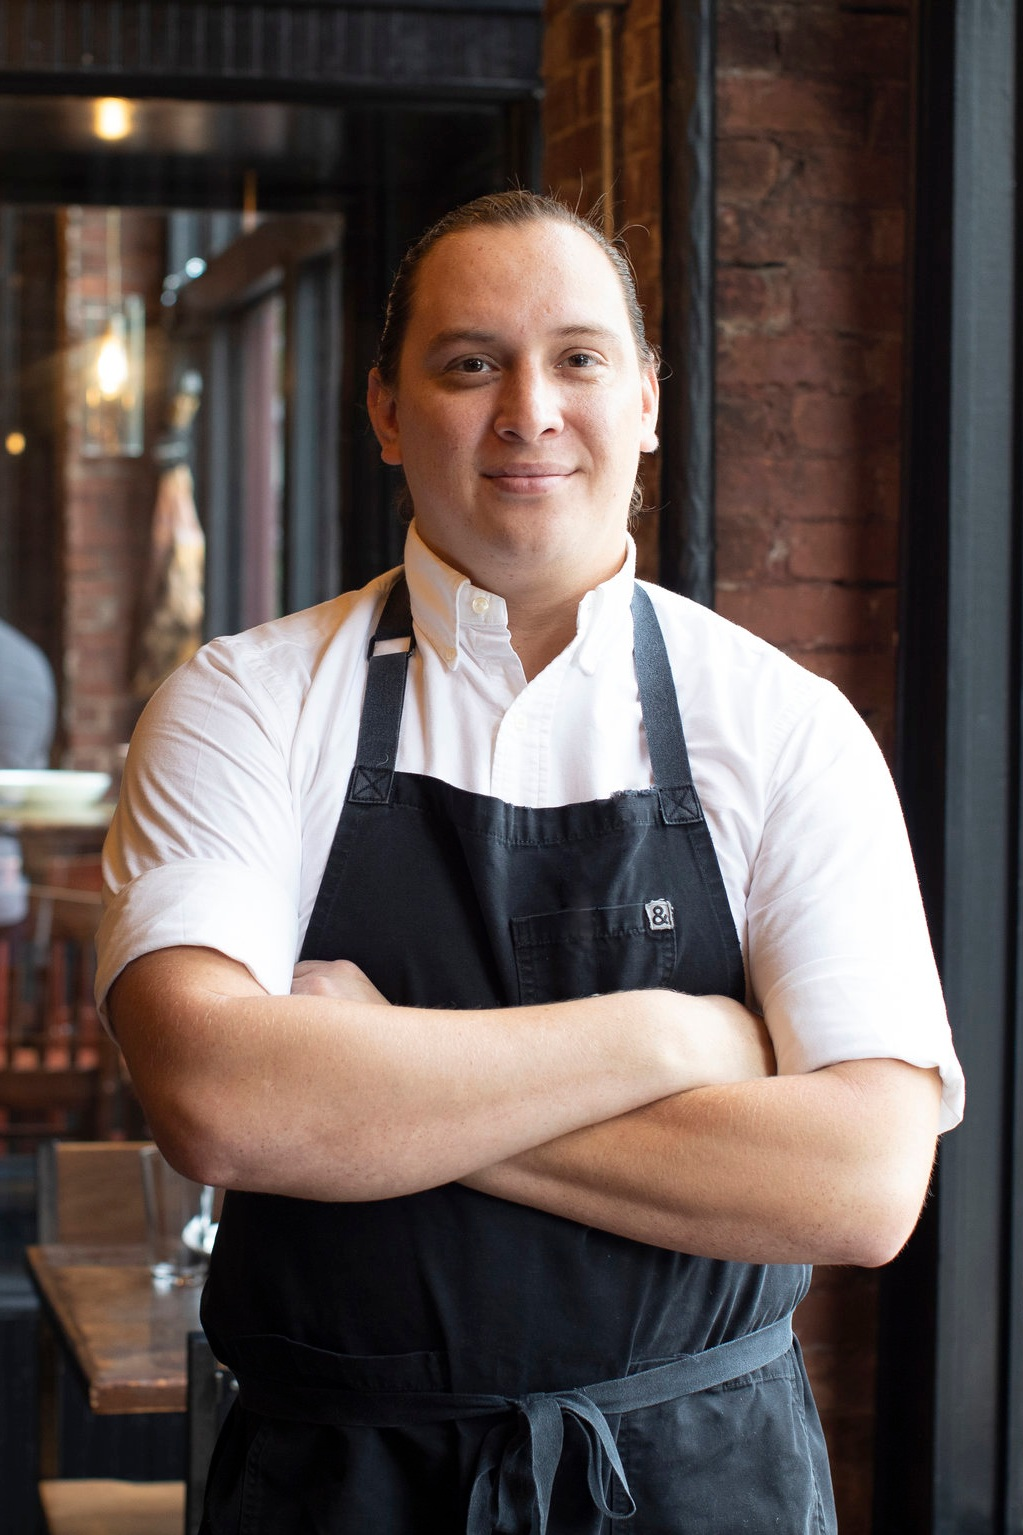 Edwin Molina started his career with CHG in 2009 at The Iberian Pig while attending Le Cordon Blue College of the Culinary Arts in Atlanta, Georgia. By the age of 23 he impressively rose through the ranks, earning the title as Executive Sous Chef, the fastest path to this position in CHG history. In 2011, Edwin was tapped to lead the kitchen at CHG's new Italian concept, Double Zero. He was promoted to Executive Chef with the move, and for 8 years Edwin was the culinary vision behind the menu. In the summer of 2019 Edwin returned to his roots at The Iberian Pig as Executive Chef. With almost a decade of experience with CHG, Edwin is perfectly situated to steer the ship at our highest volume restaurant.  When Edwin isn't in the kitchen, you can find him cheering on the Atlanta Falcons and the Atlanta Braves, and spending time with his 2-year old daughter, Olive.